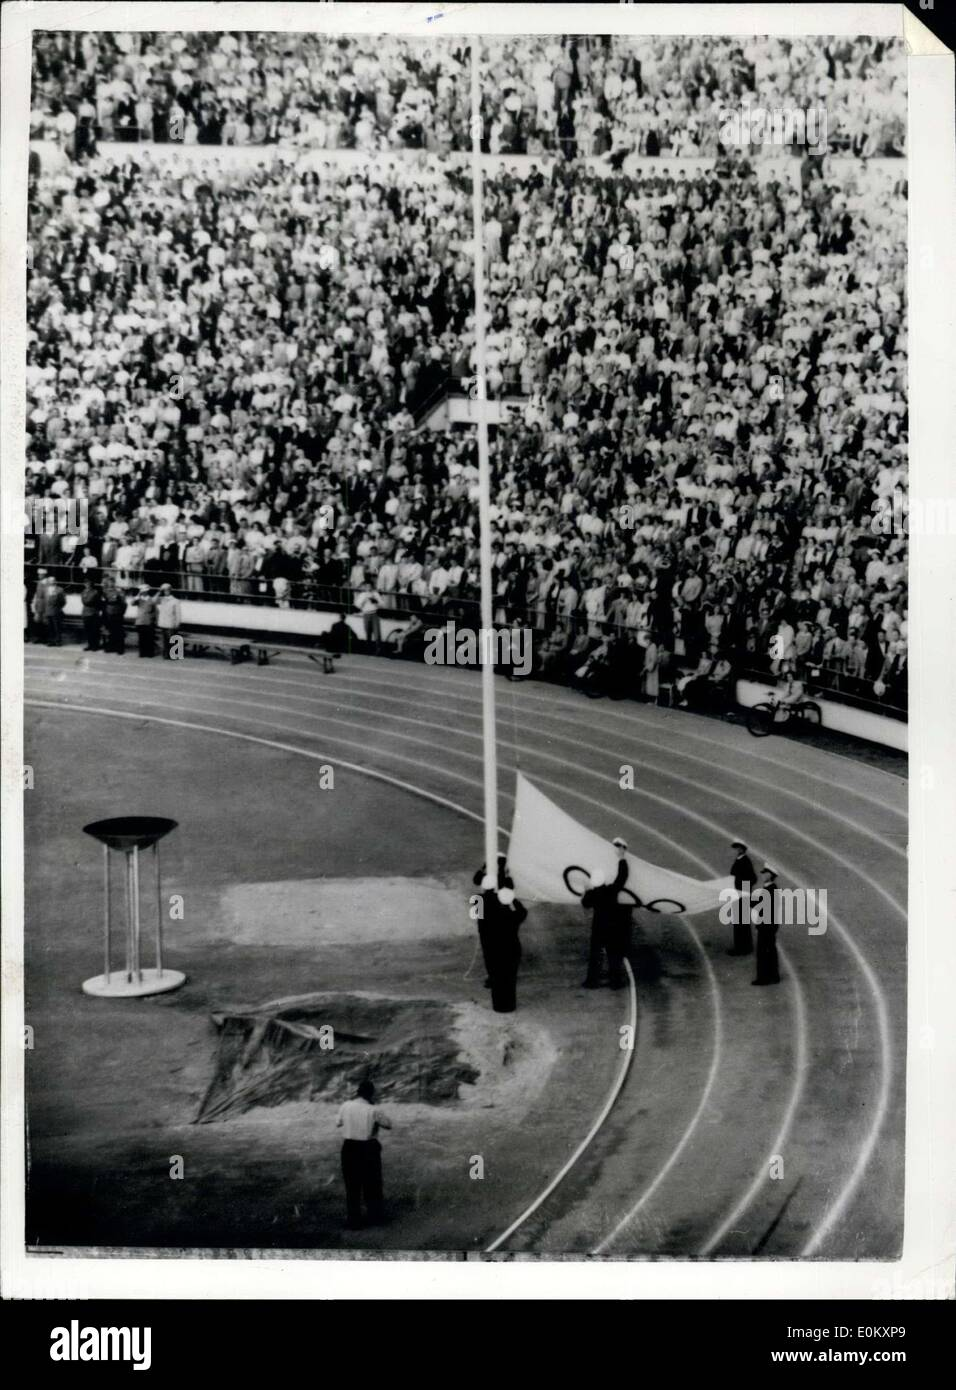 Aug. 08, 1952 - The Olympic Games end, Hauling Down the flag at Helsinki: Photo shows the scene in the Helsinki Stadium this evening as the Olympic Flag is hauled down to mark the closing of the 1952 Olympiad. - Stock Image